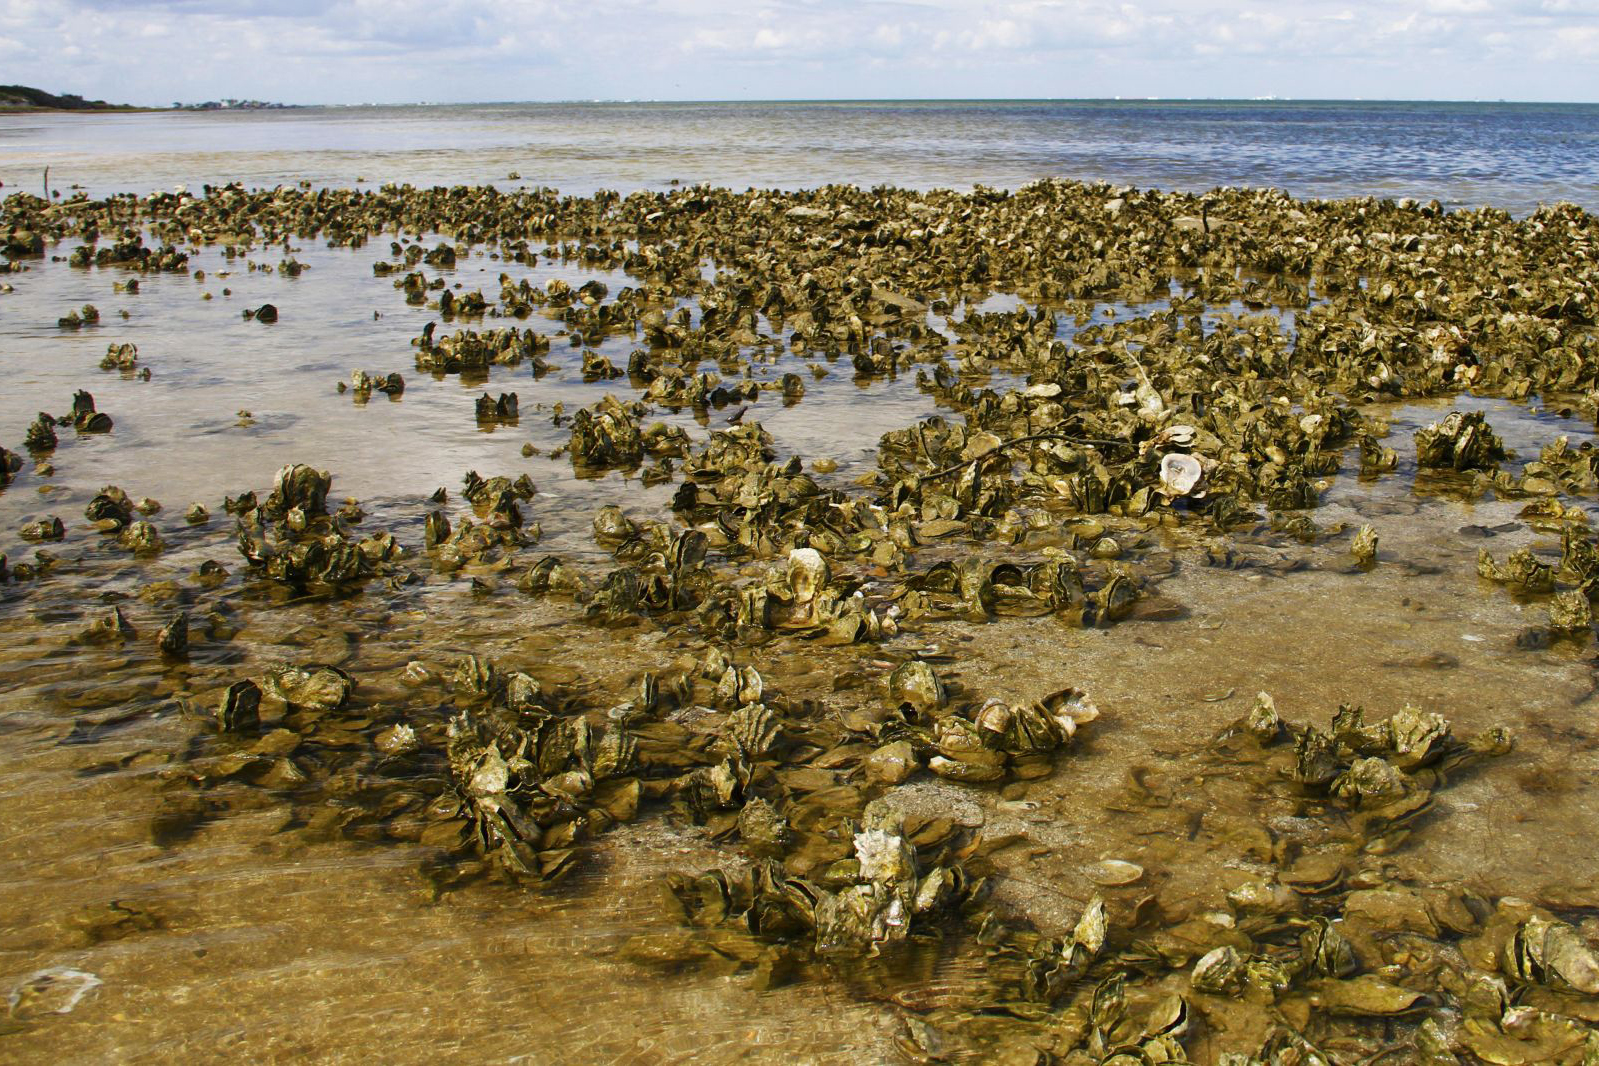 Oysters line the Gulf of Mexico shore.